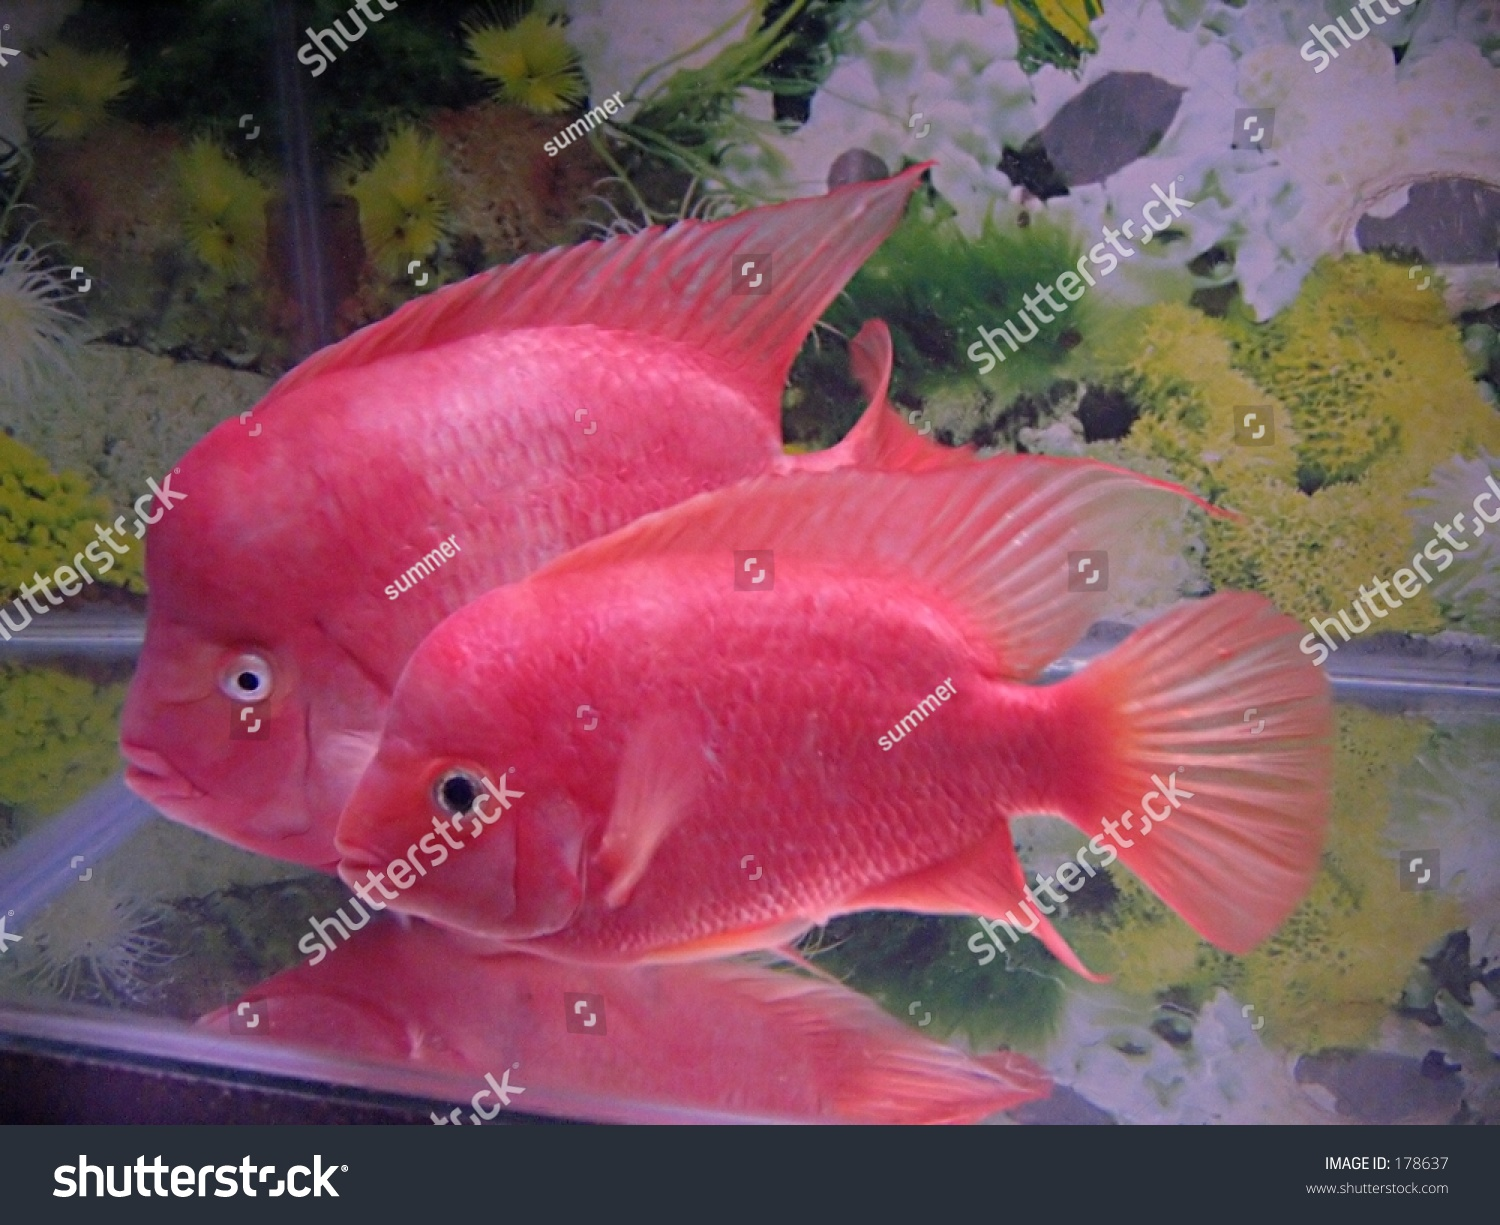 Red Flower Horn Fish Couple Stock Photo (Royalty Free) 178637 ...